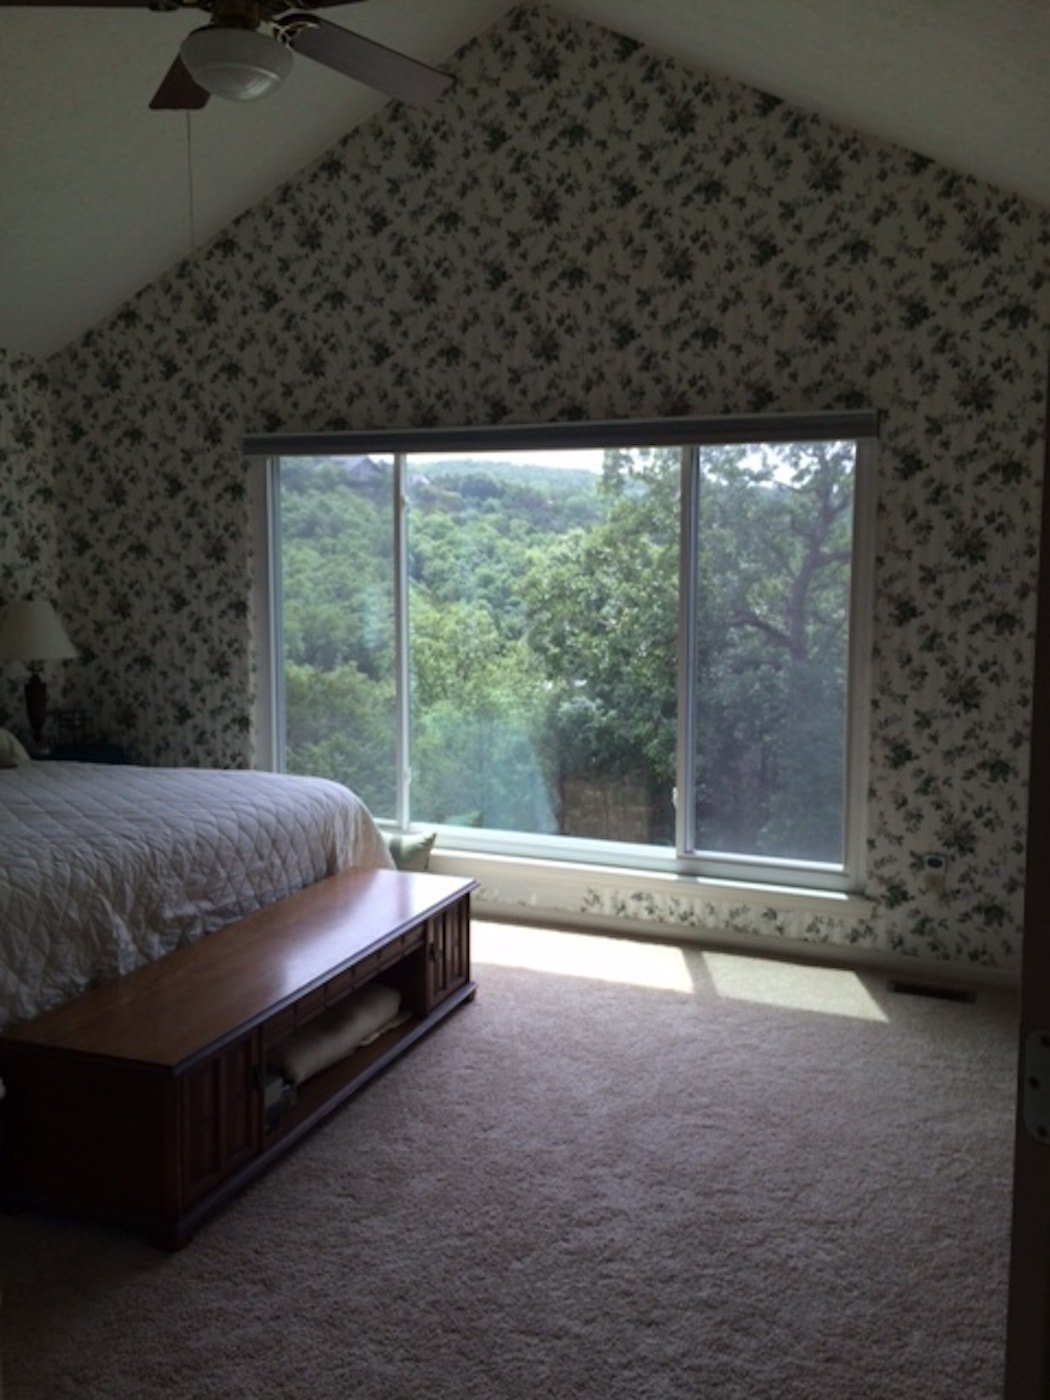 A dark bedroom with dated wallpaper on the walls a large windows.